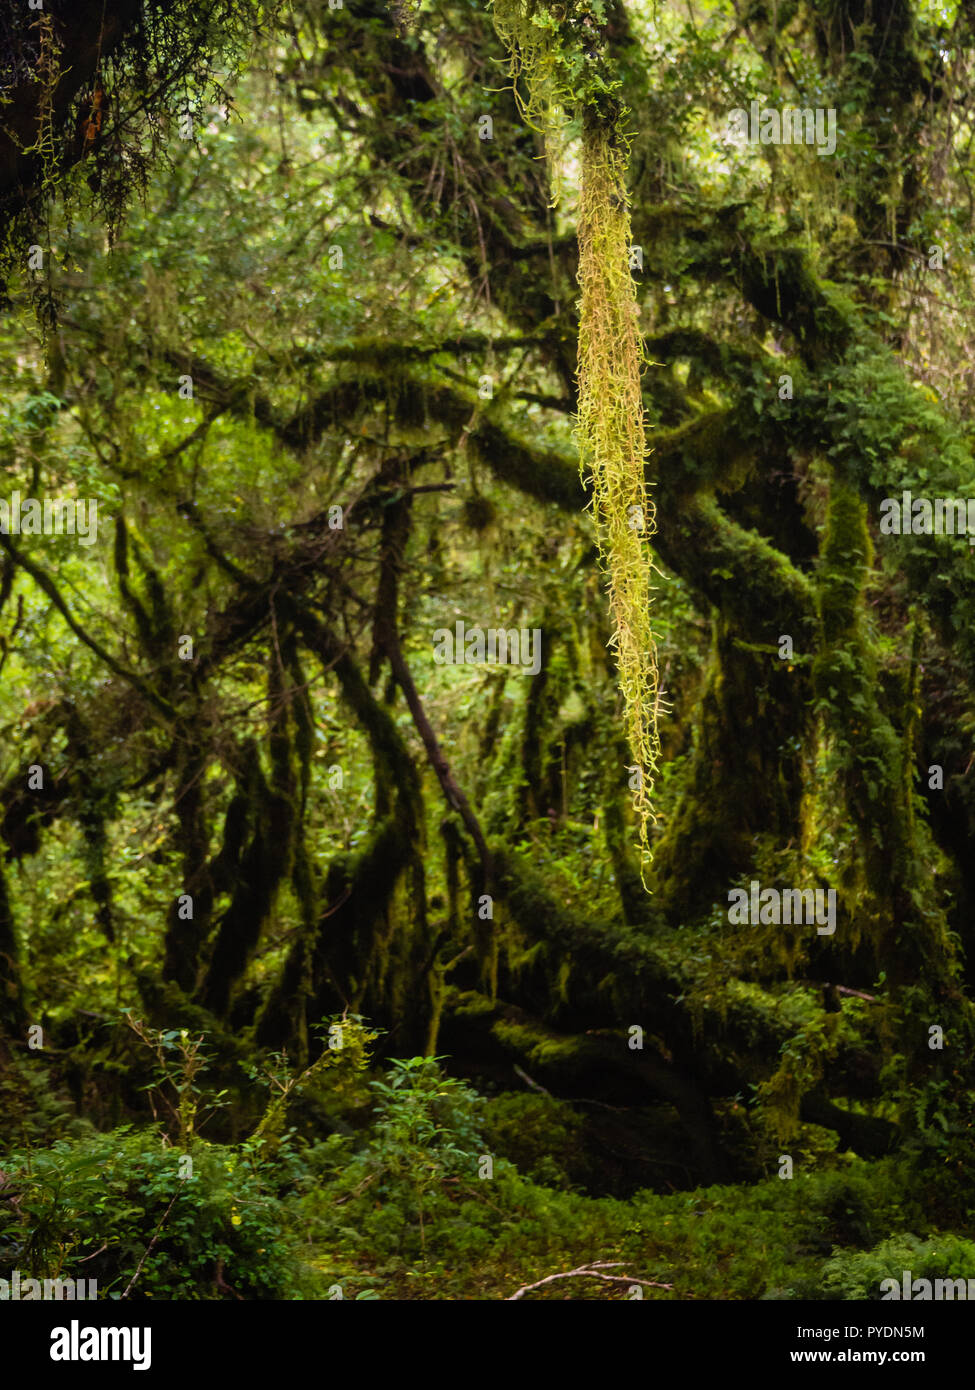 Detail of the enchanted forest in carretera austral, Bosque encantado Chile patagonia - Stock Image